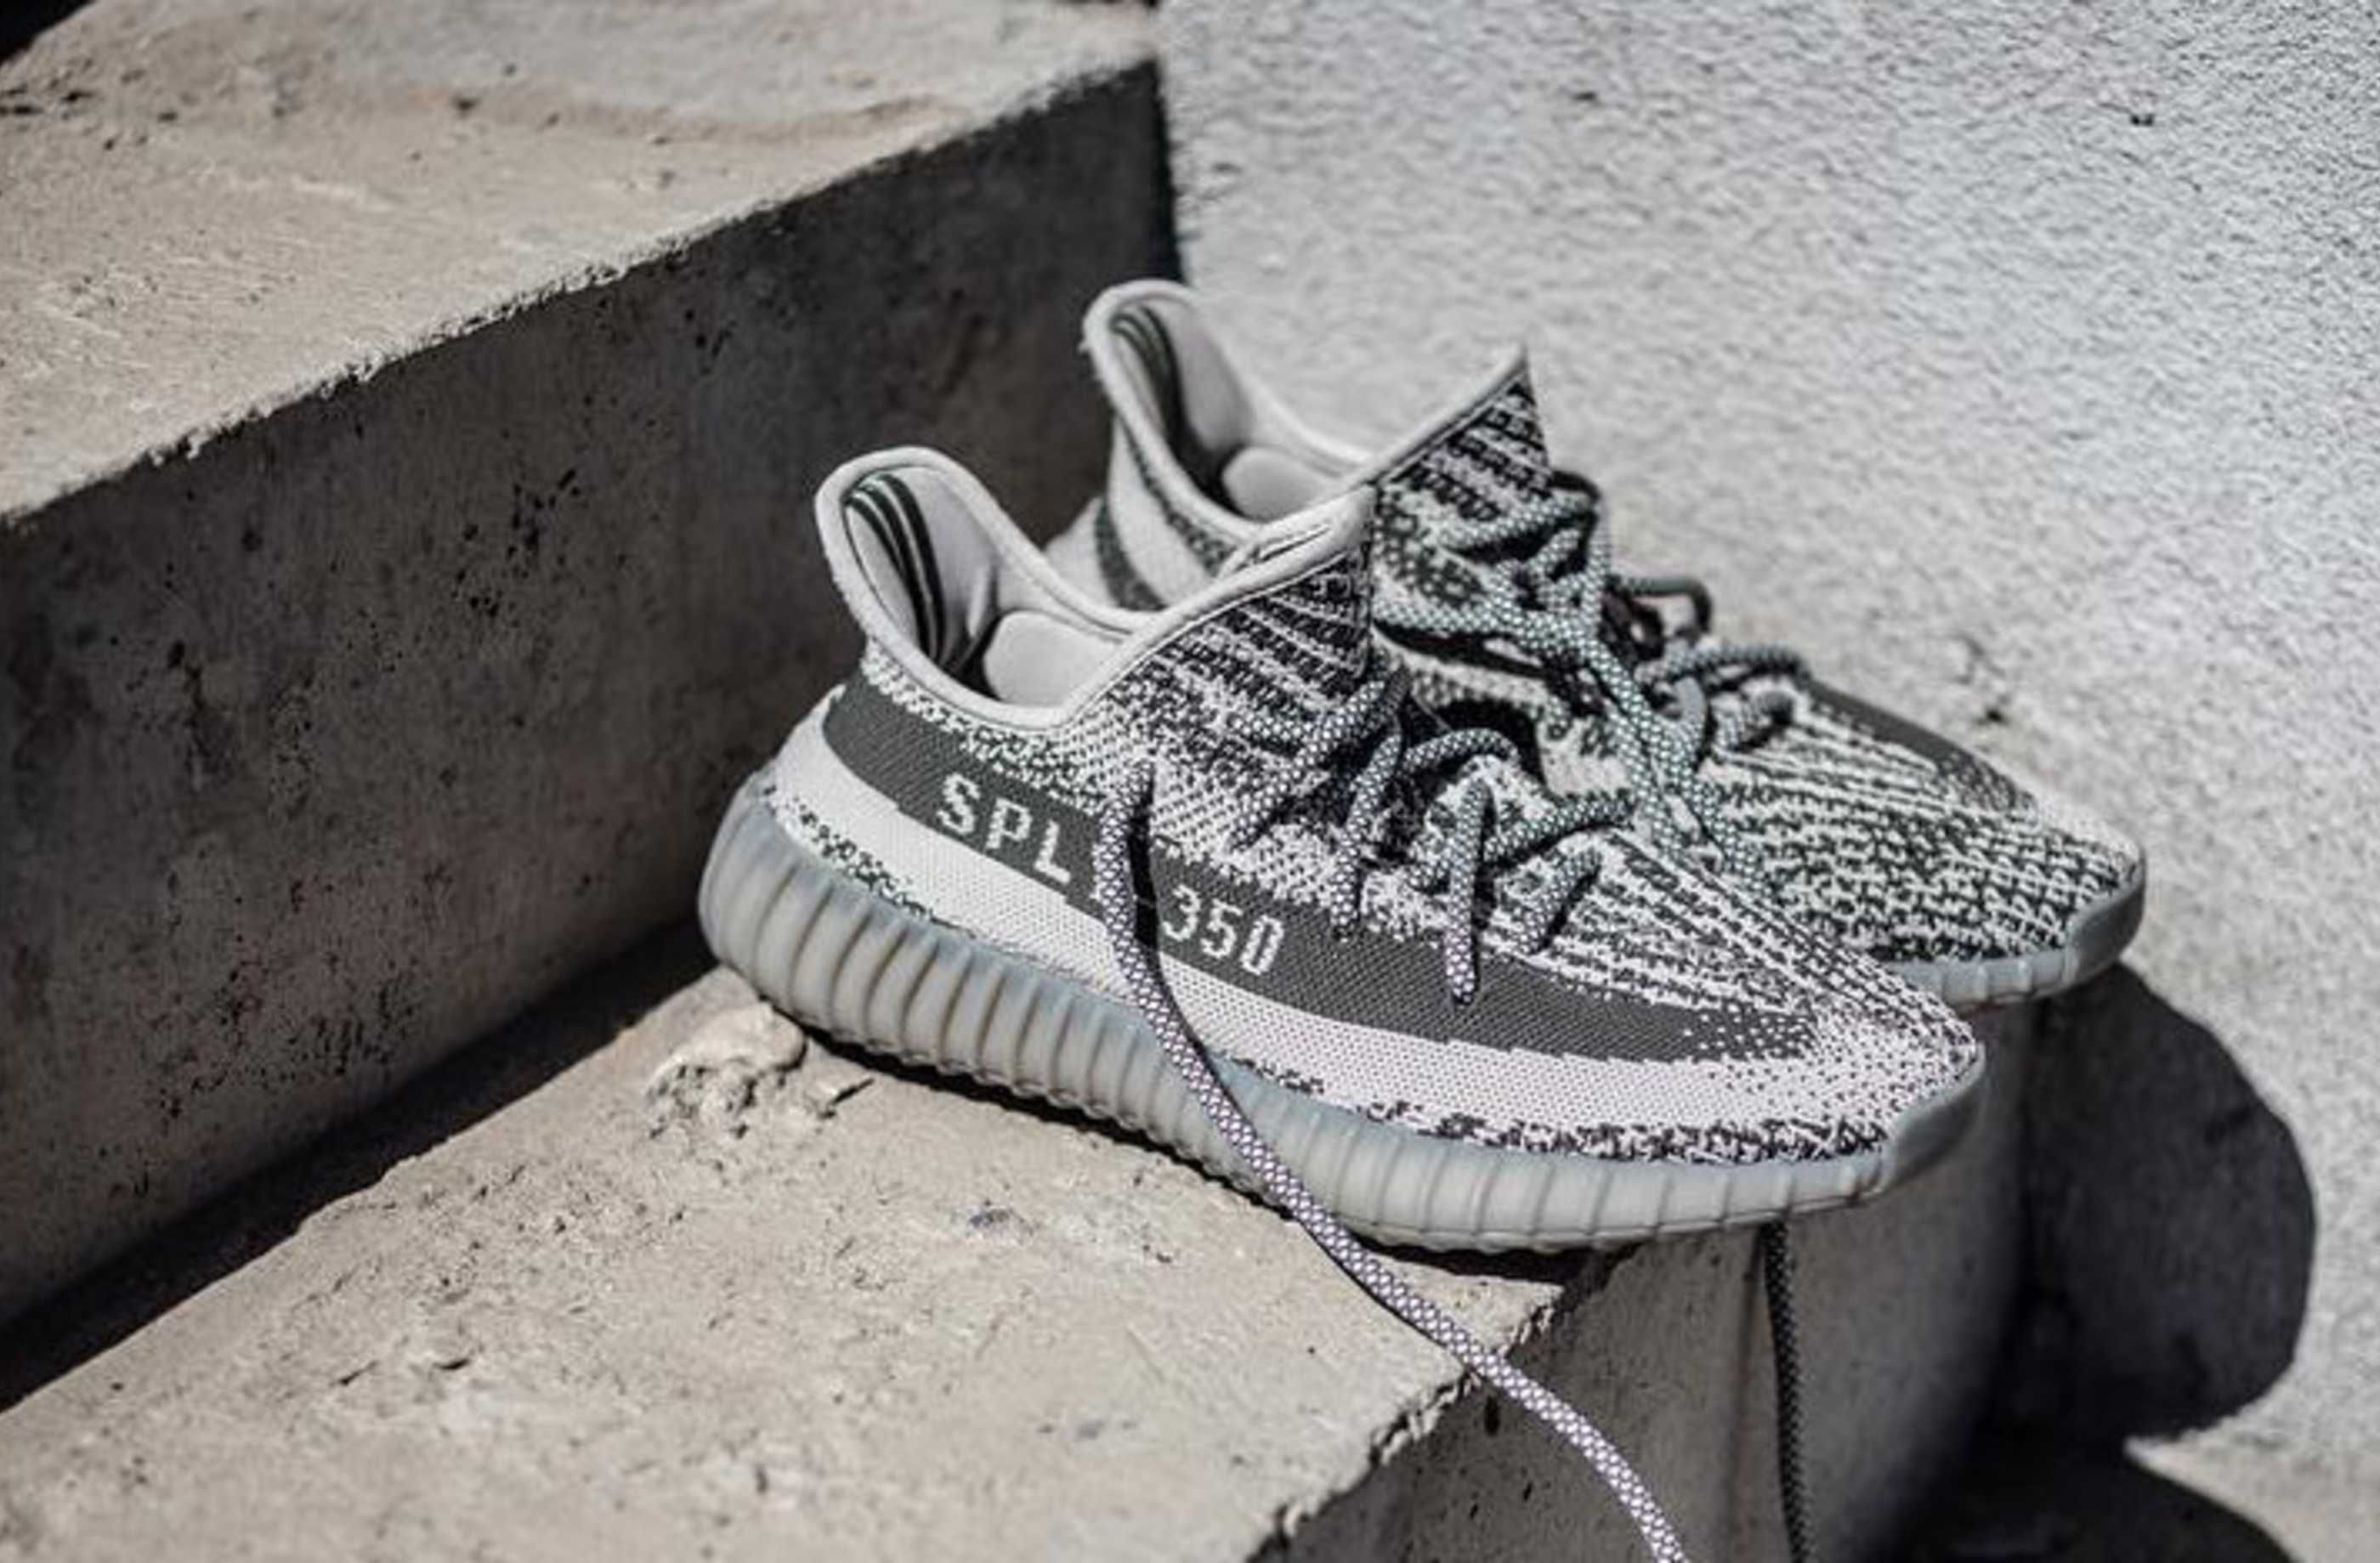 online retailer 62ce6 21944 A First Look at the All Grey adidas Yeezy Boost 350 V2 ...